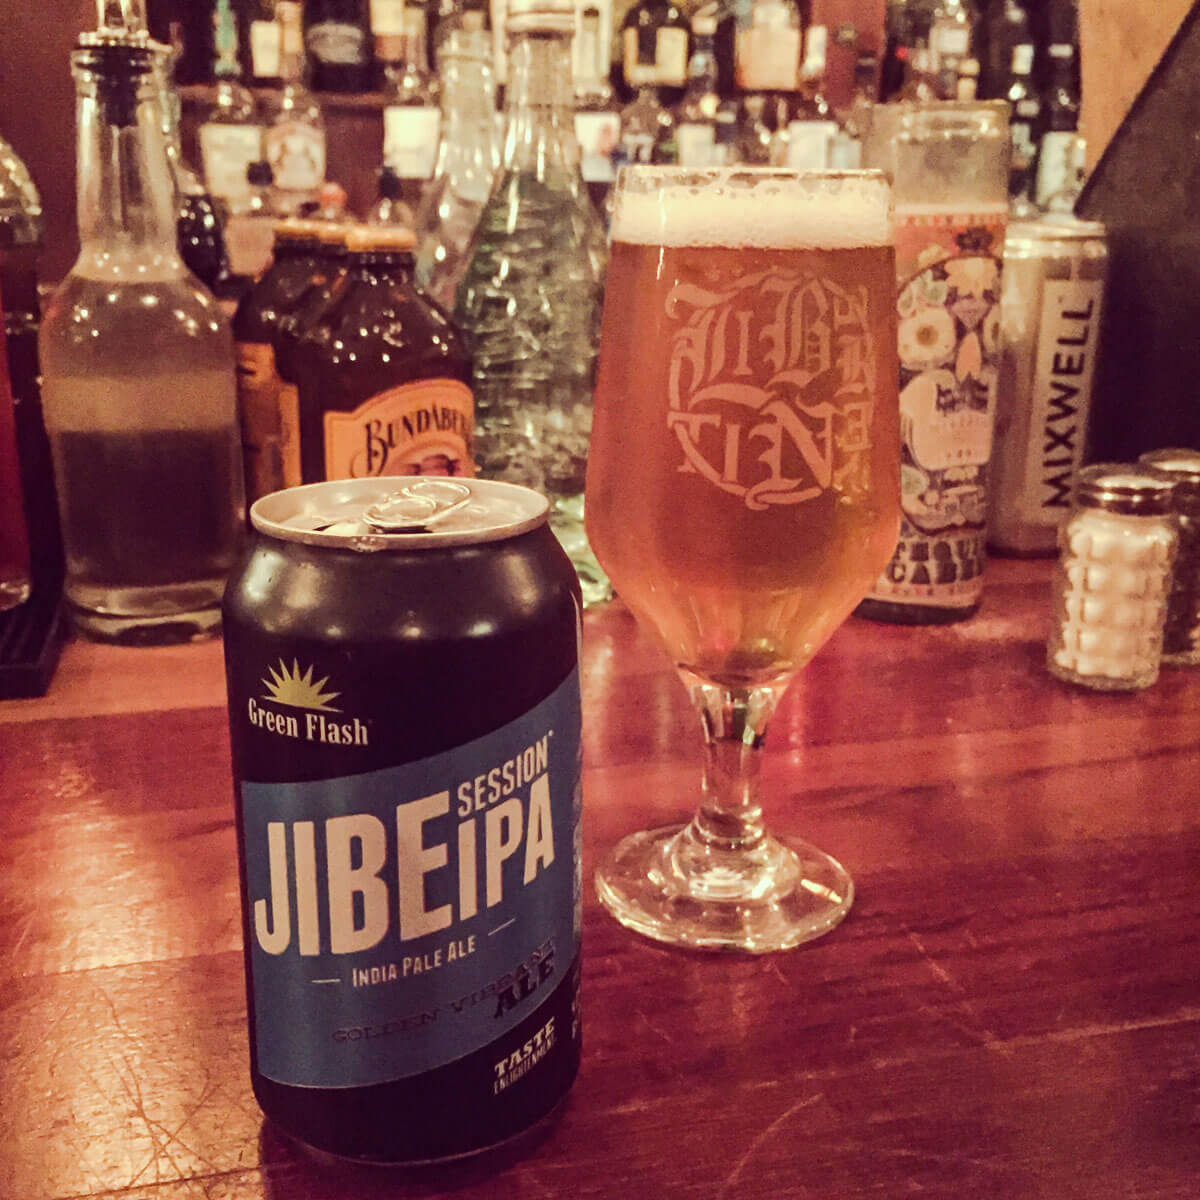 Jibe Session IPA by Green Flash Brewing Co.